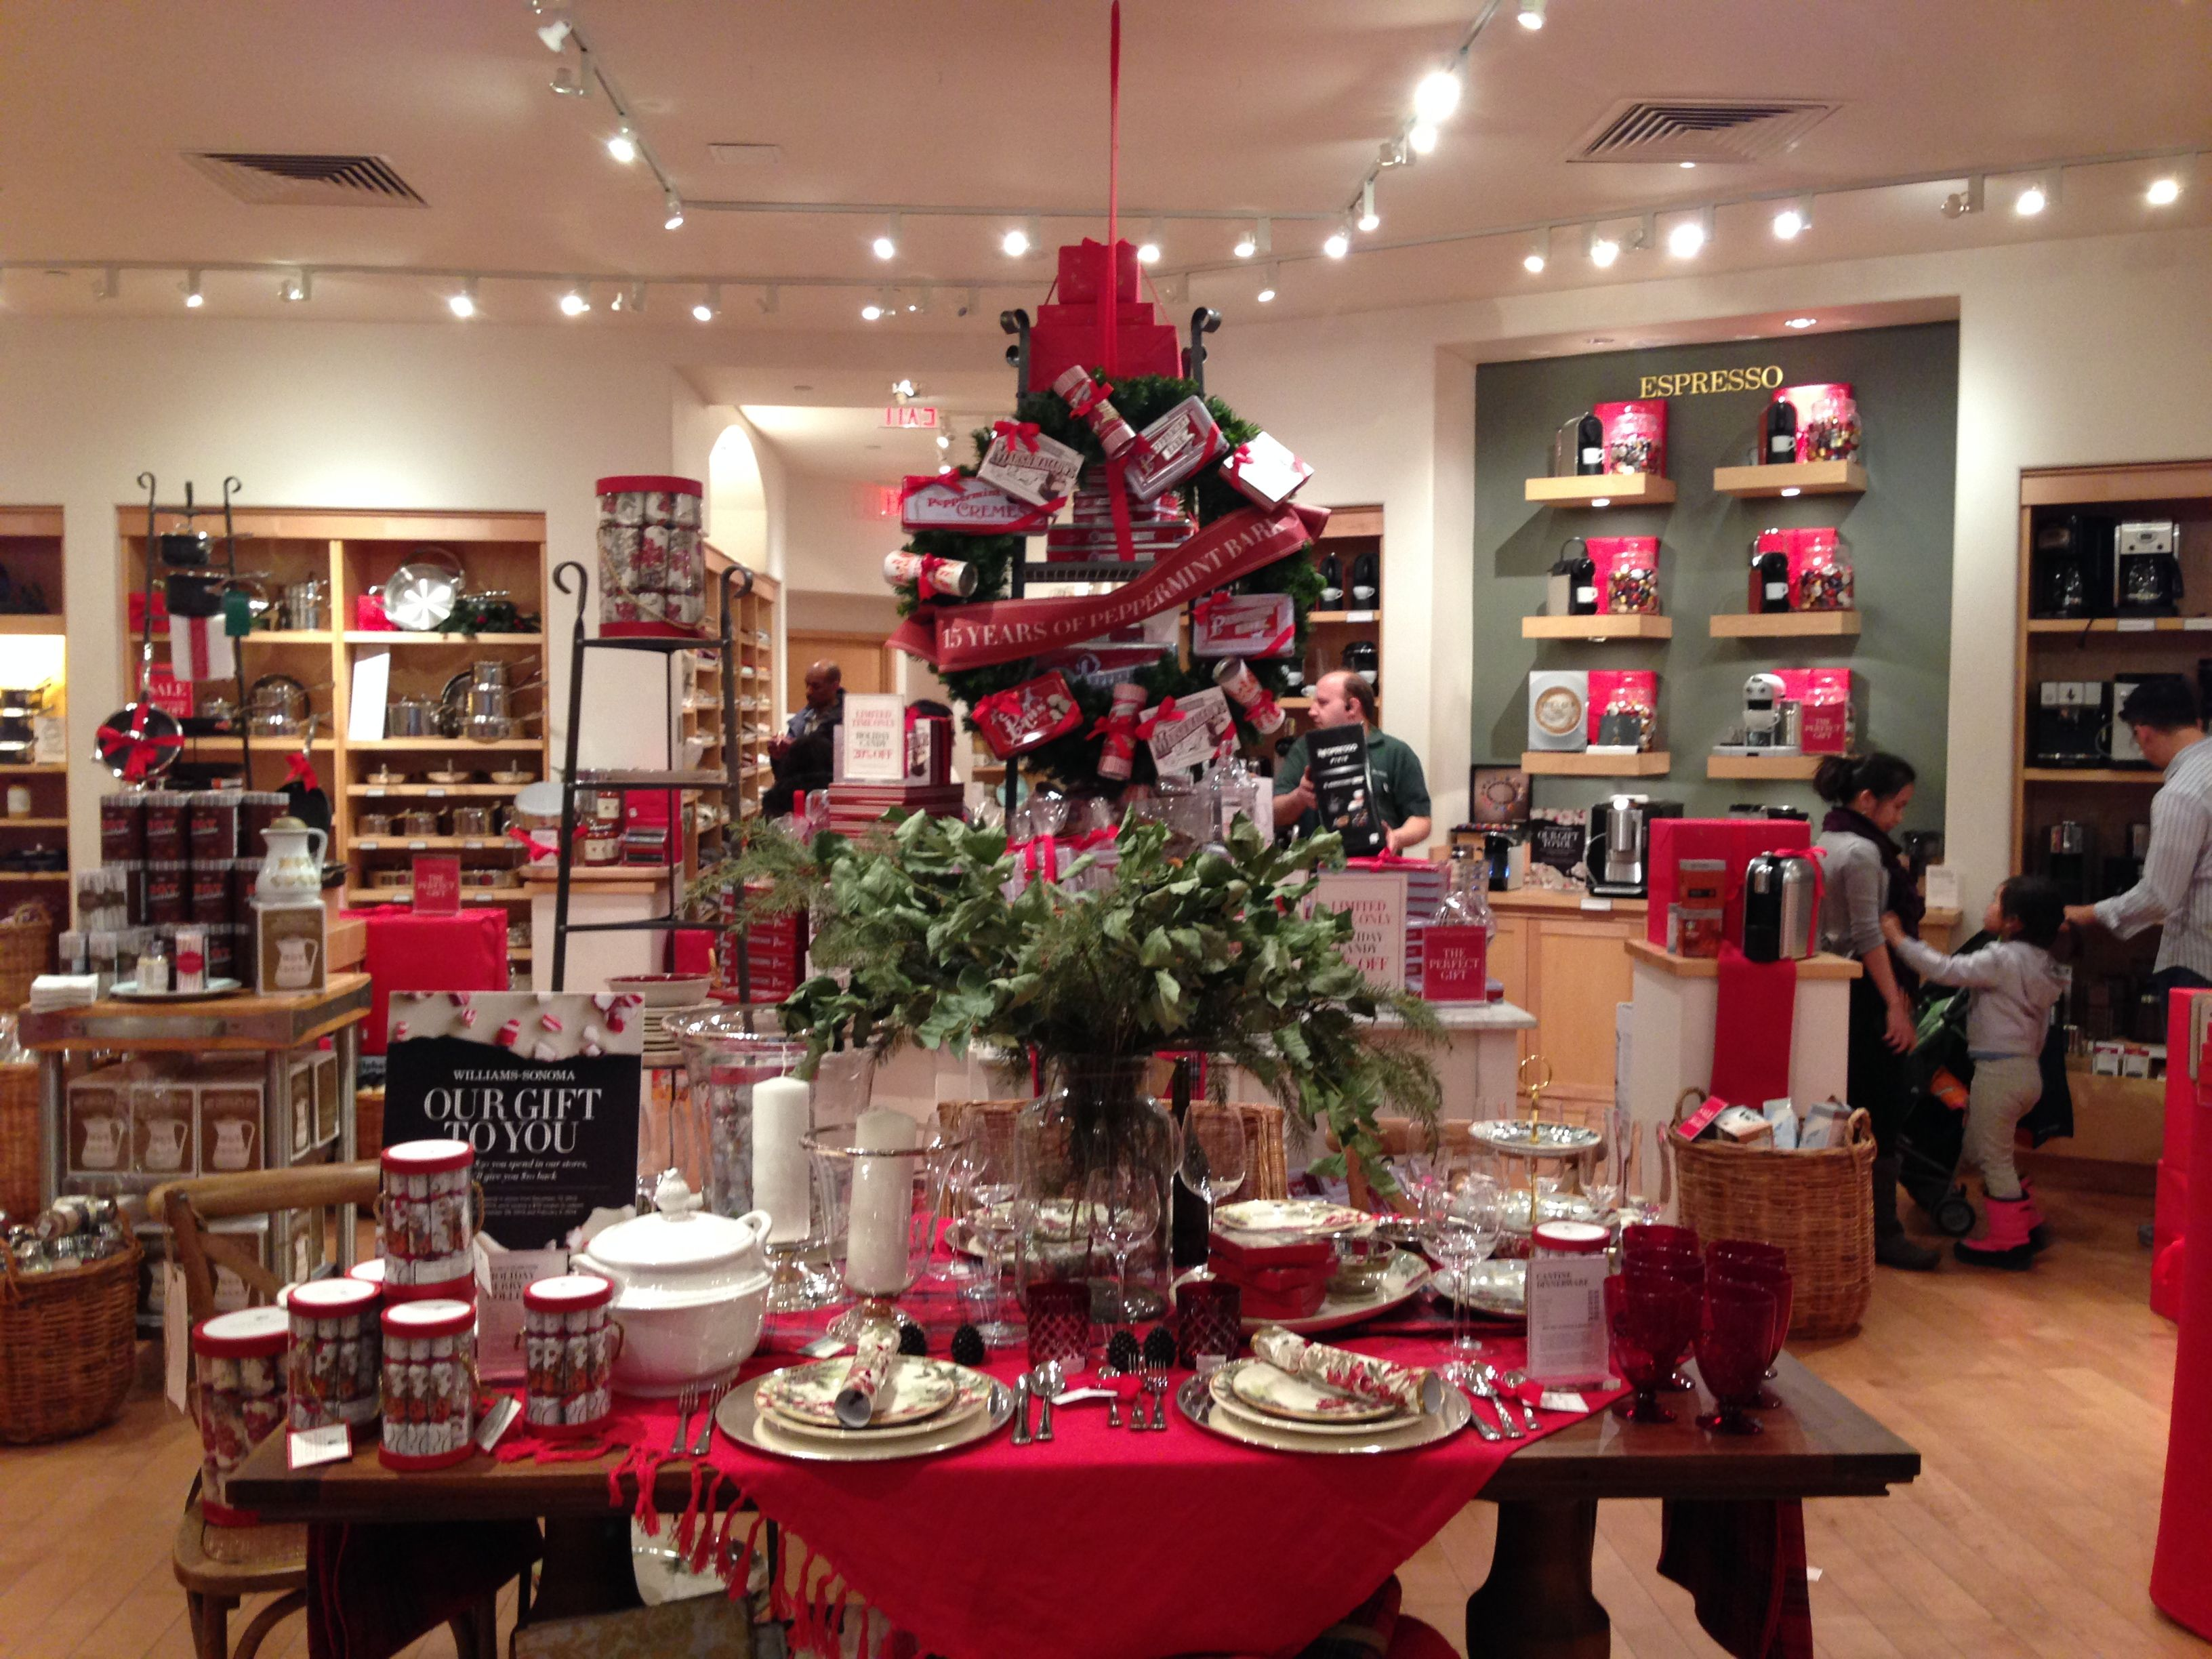 Williams Sonoma Christmas Table.Williams Sonoma Just Says Christmas From Every Angle Of The